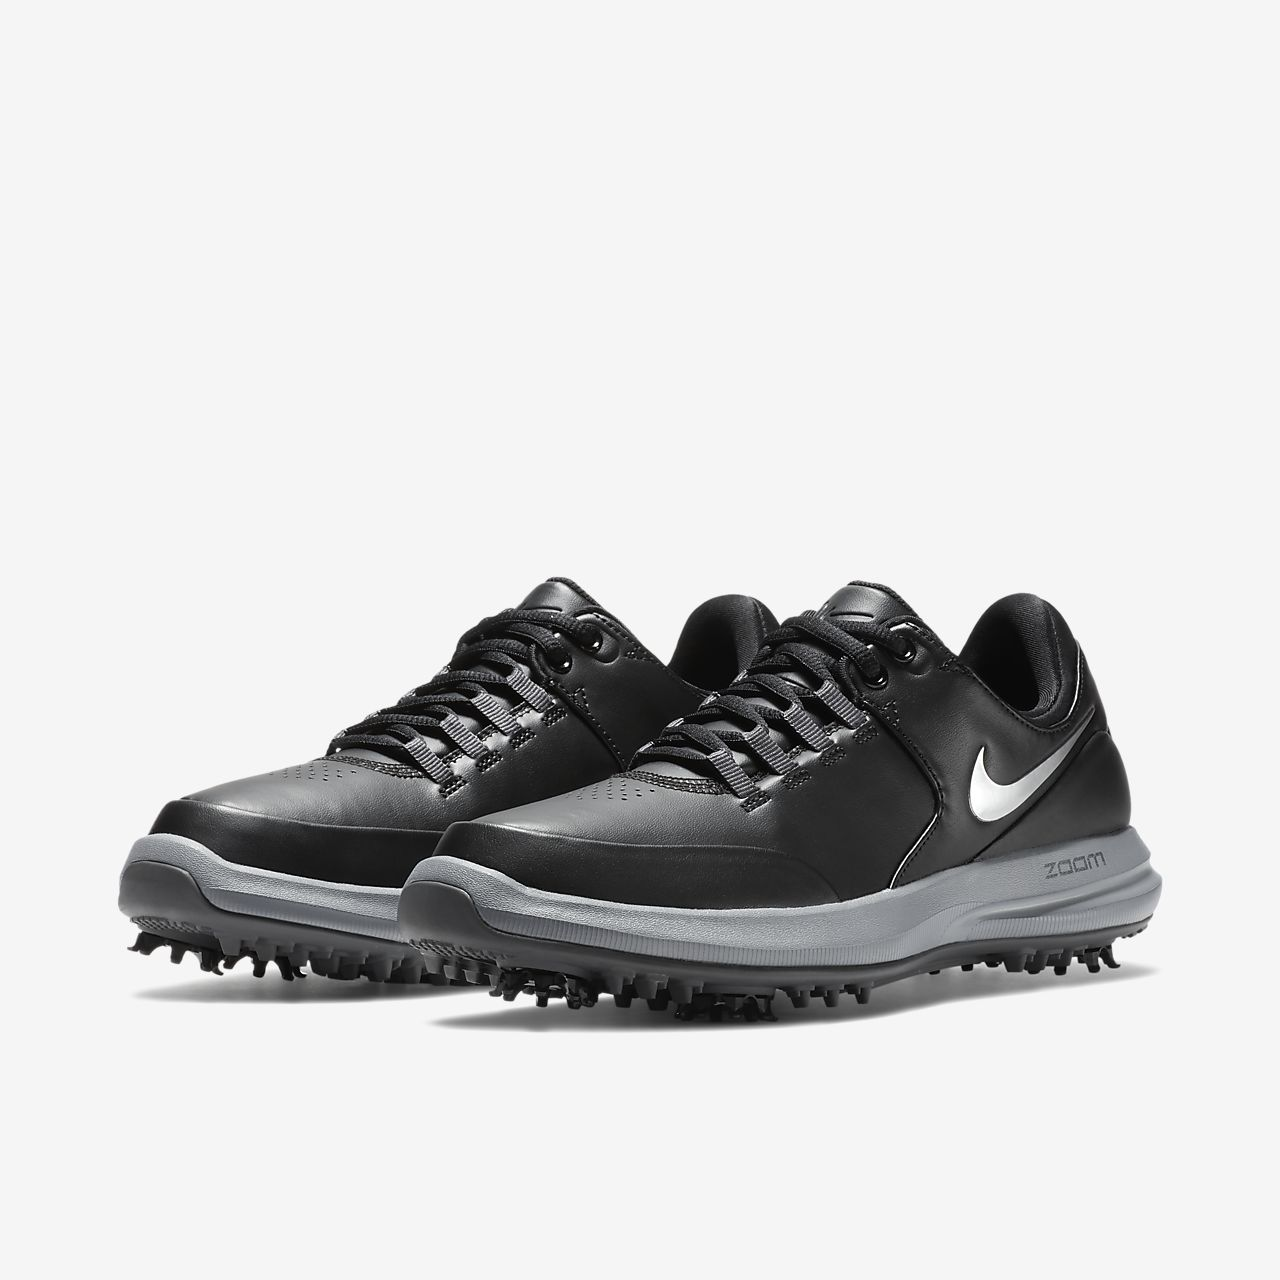 7dee466d42b44 Nike Air Zoom Accurate Women s Golf Shoe. Nike.com GB